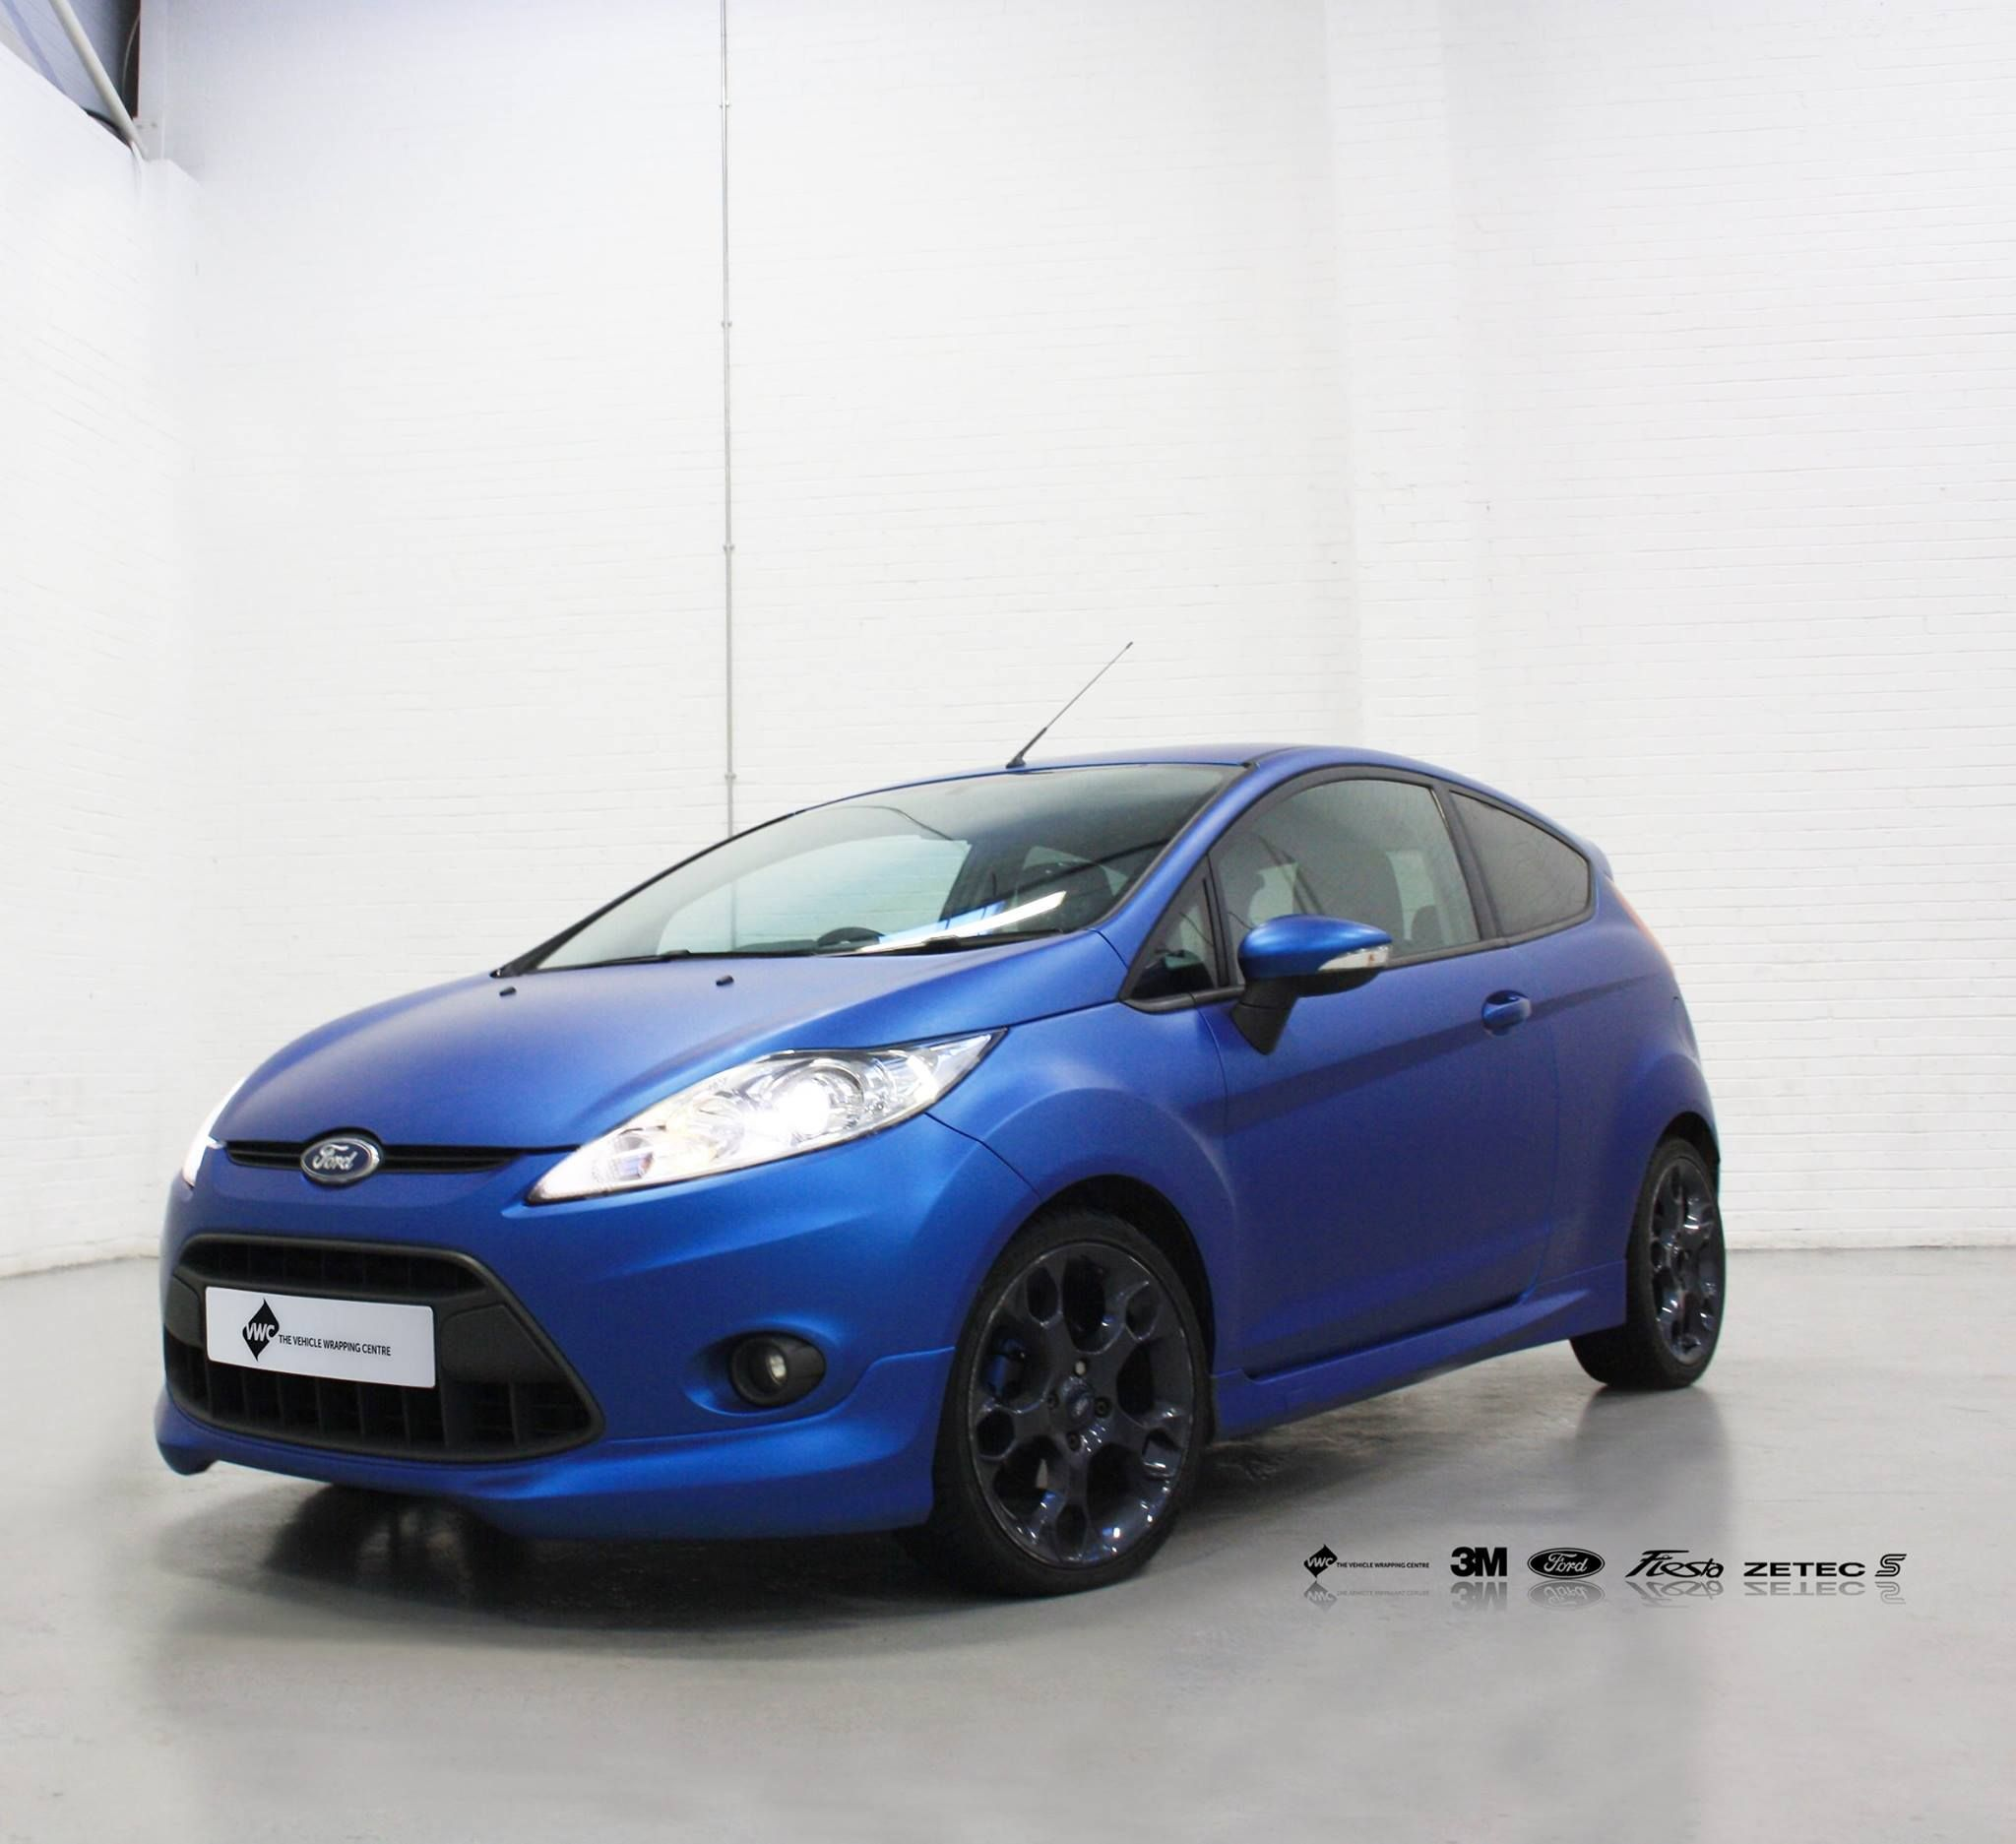 Ford Fiesta 3m Matte Metallic Blue Personal Vehicle Wrap Project